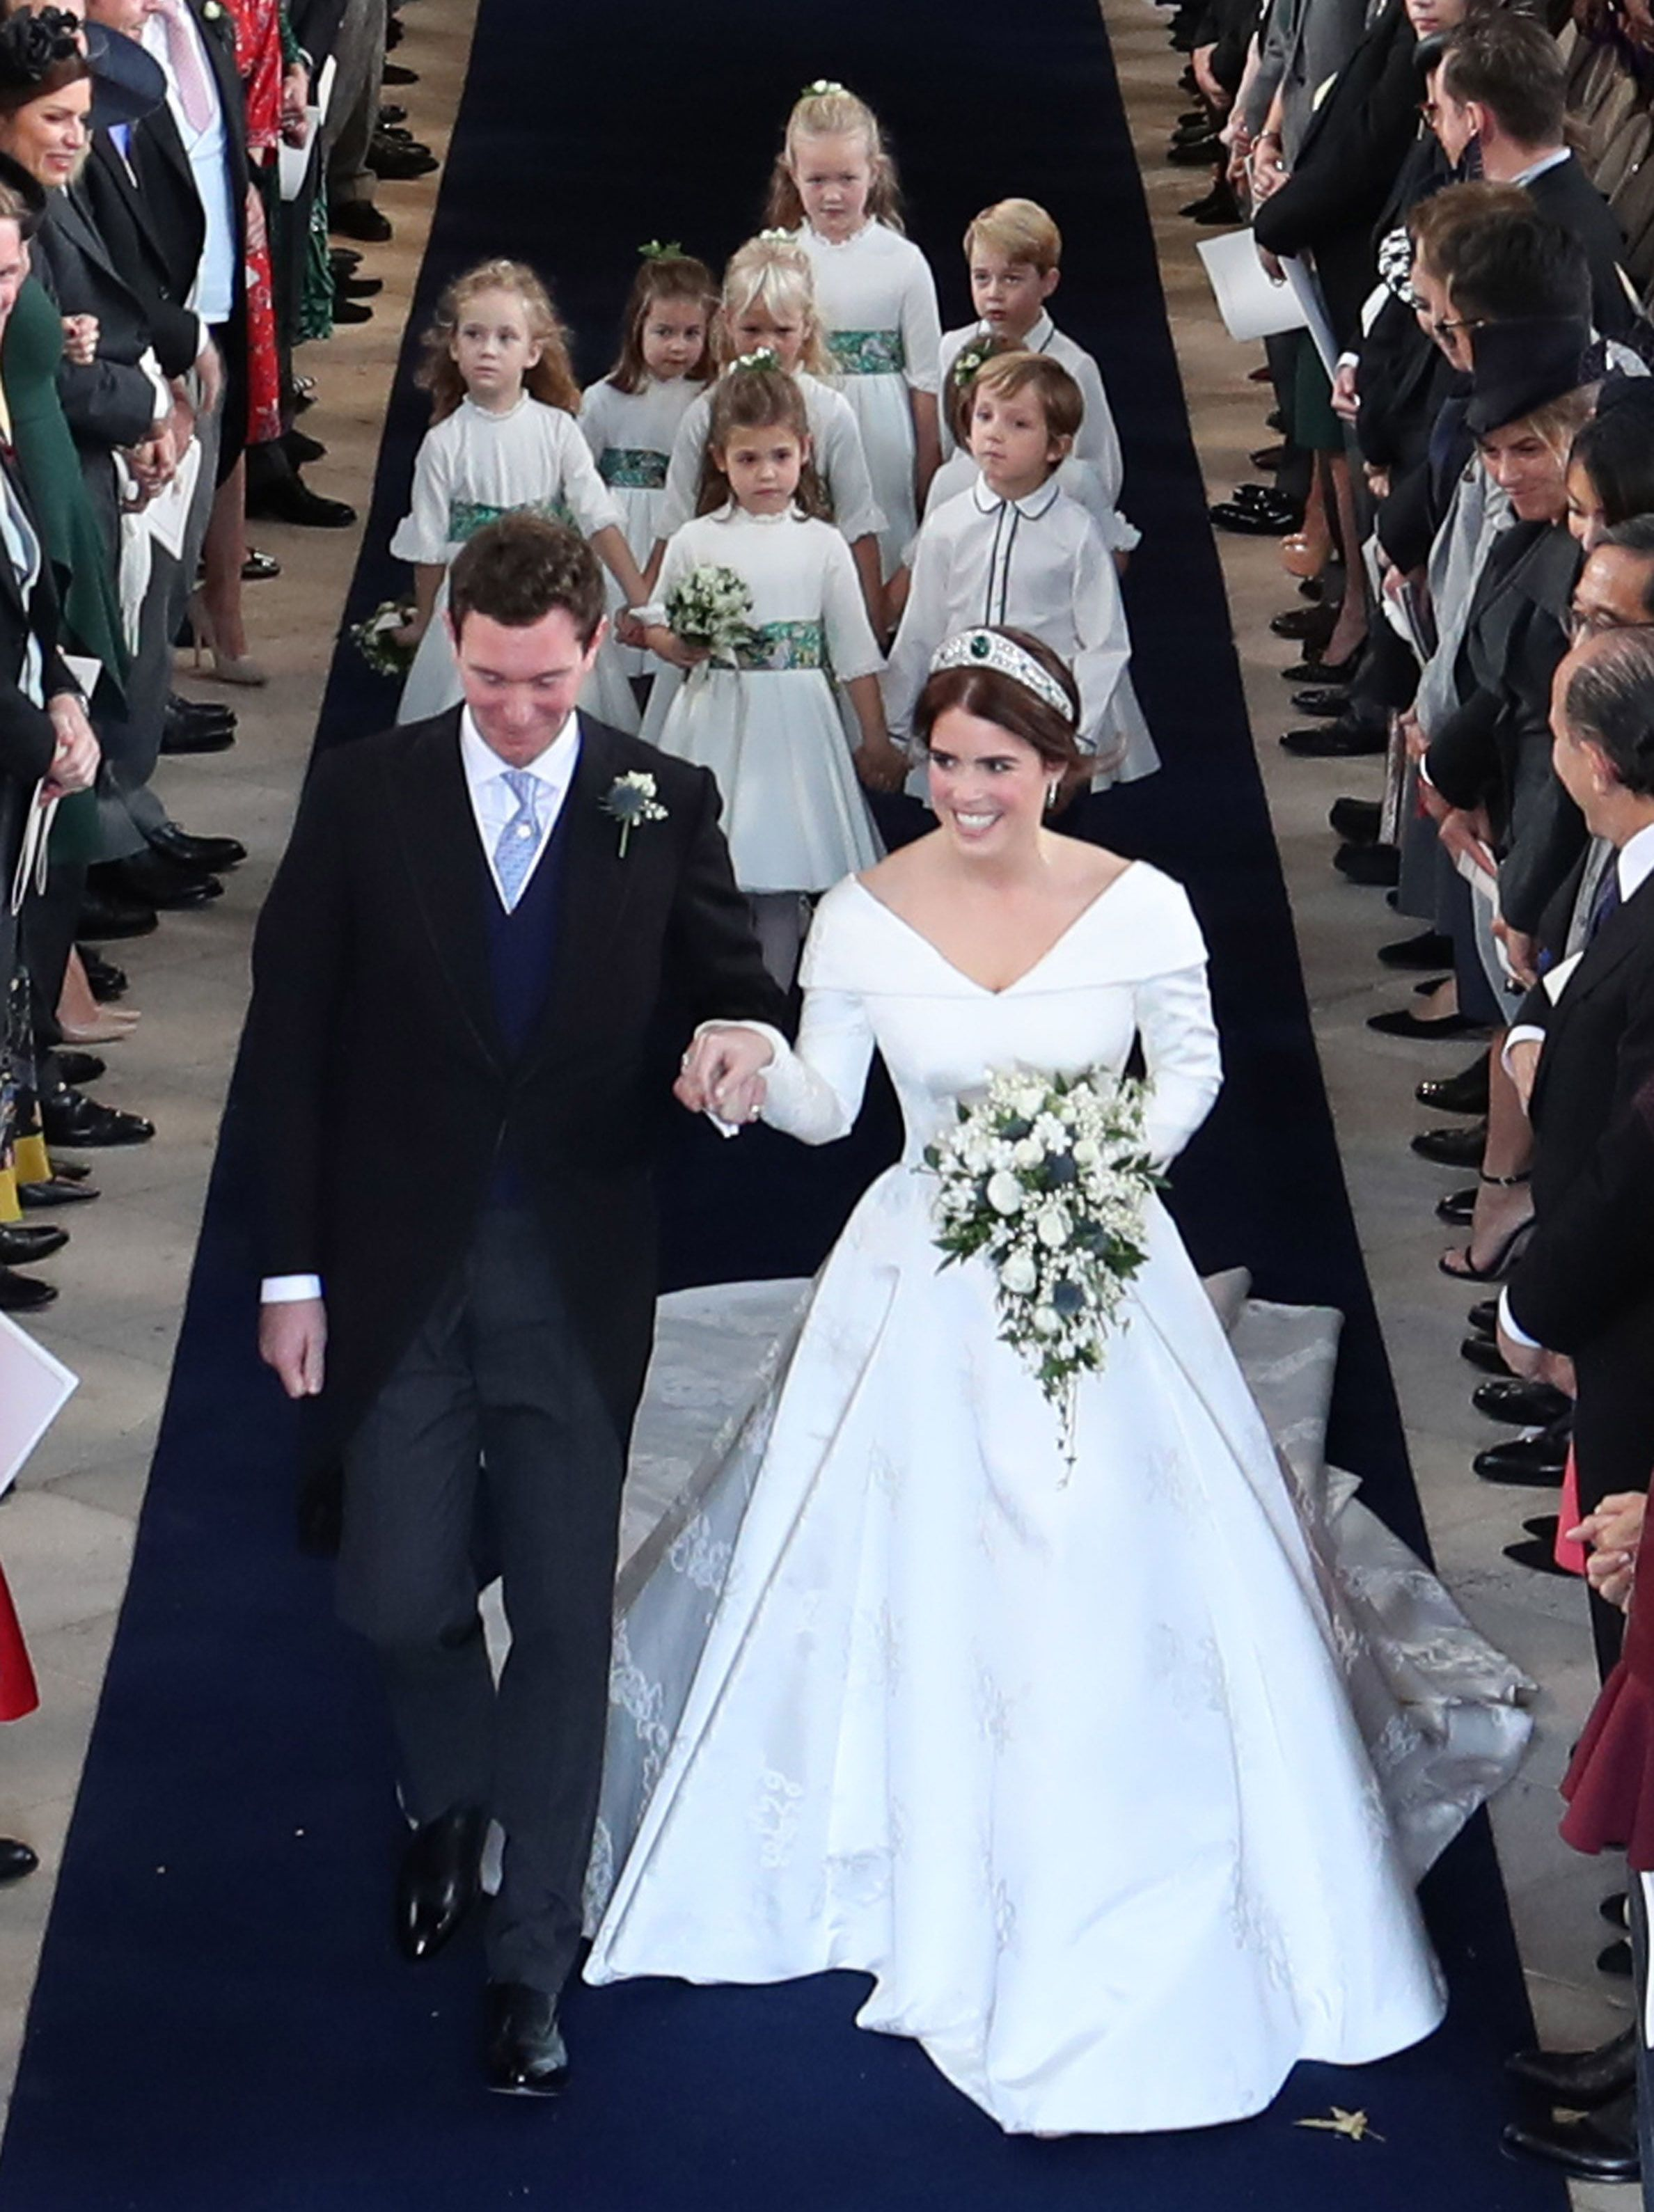 Princess Eugenie S Walk Down The Aisle Was A Seismic Moment After Scoliosis Surgery At Age 12 Eugenie Wedding Royal Wedding Dress Royal Brides